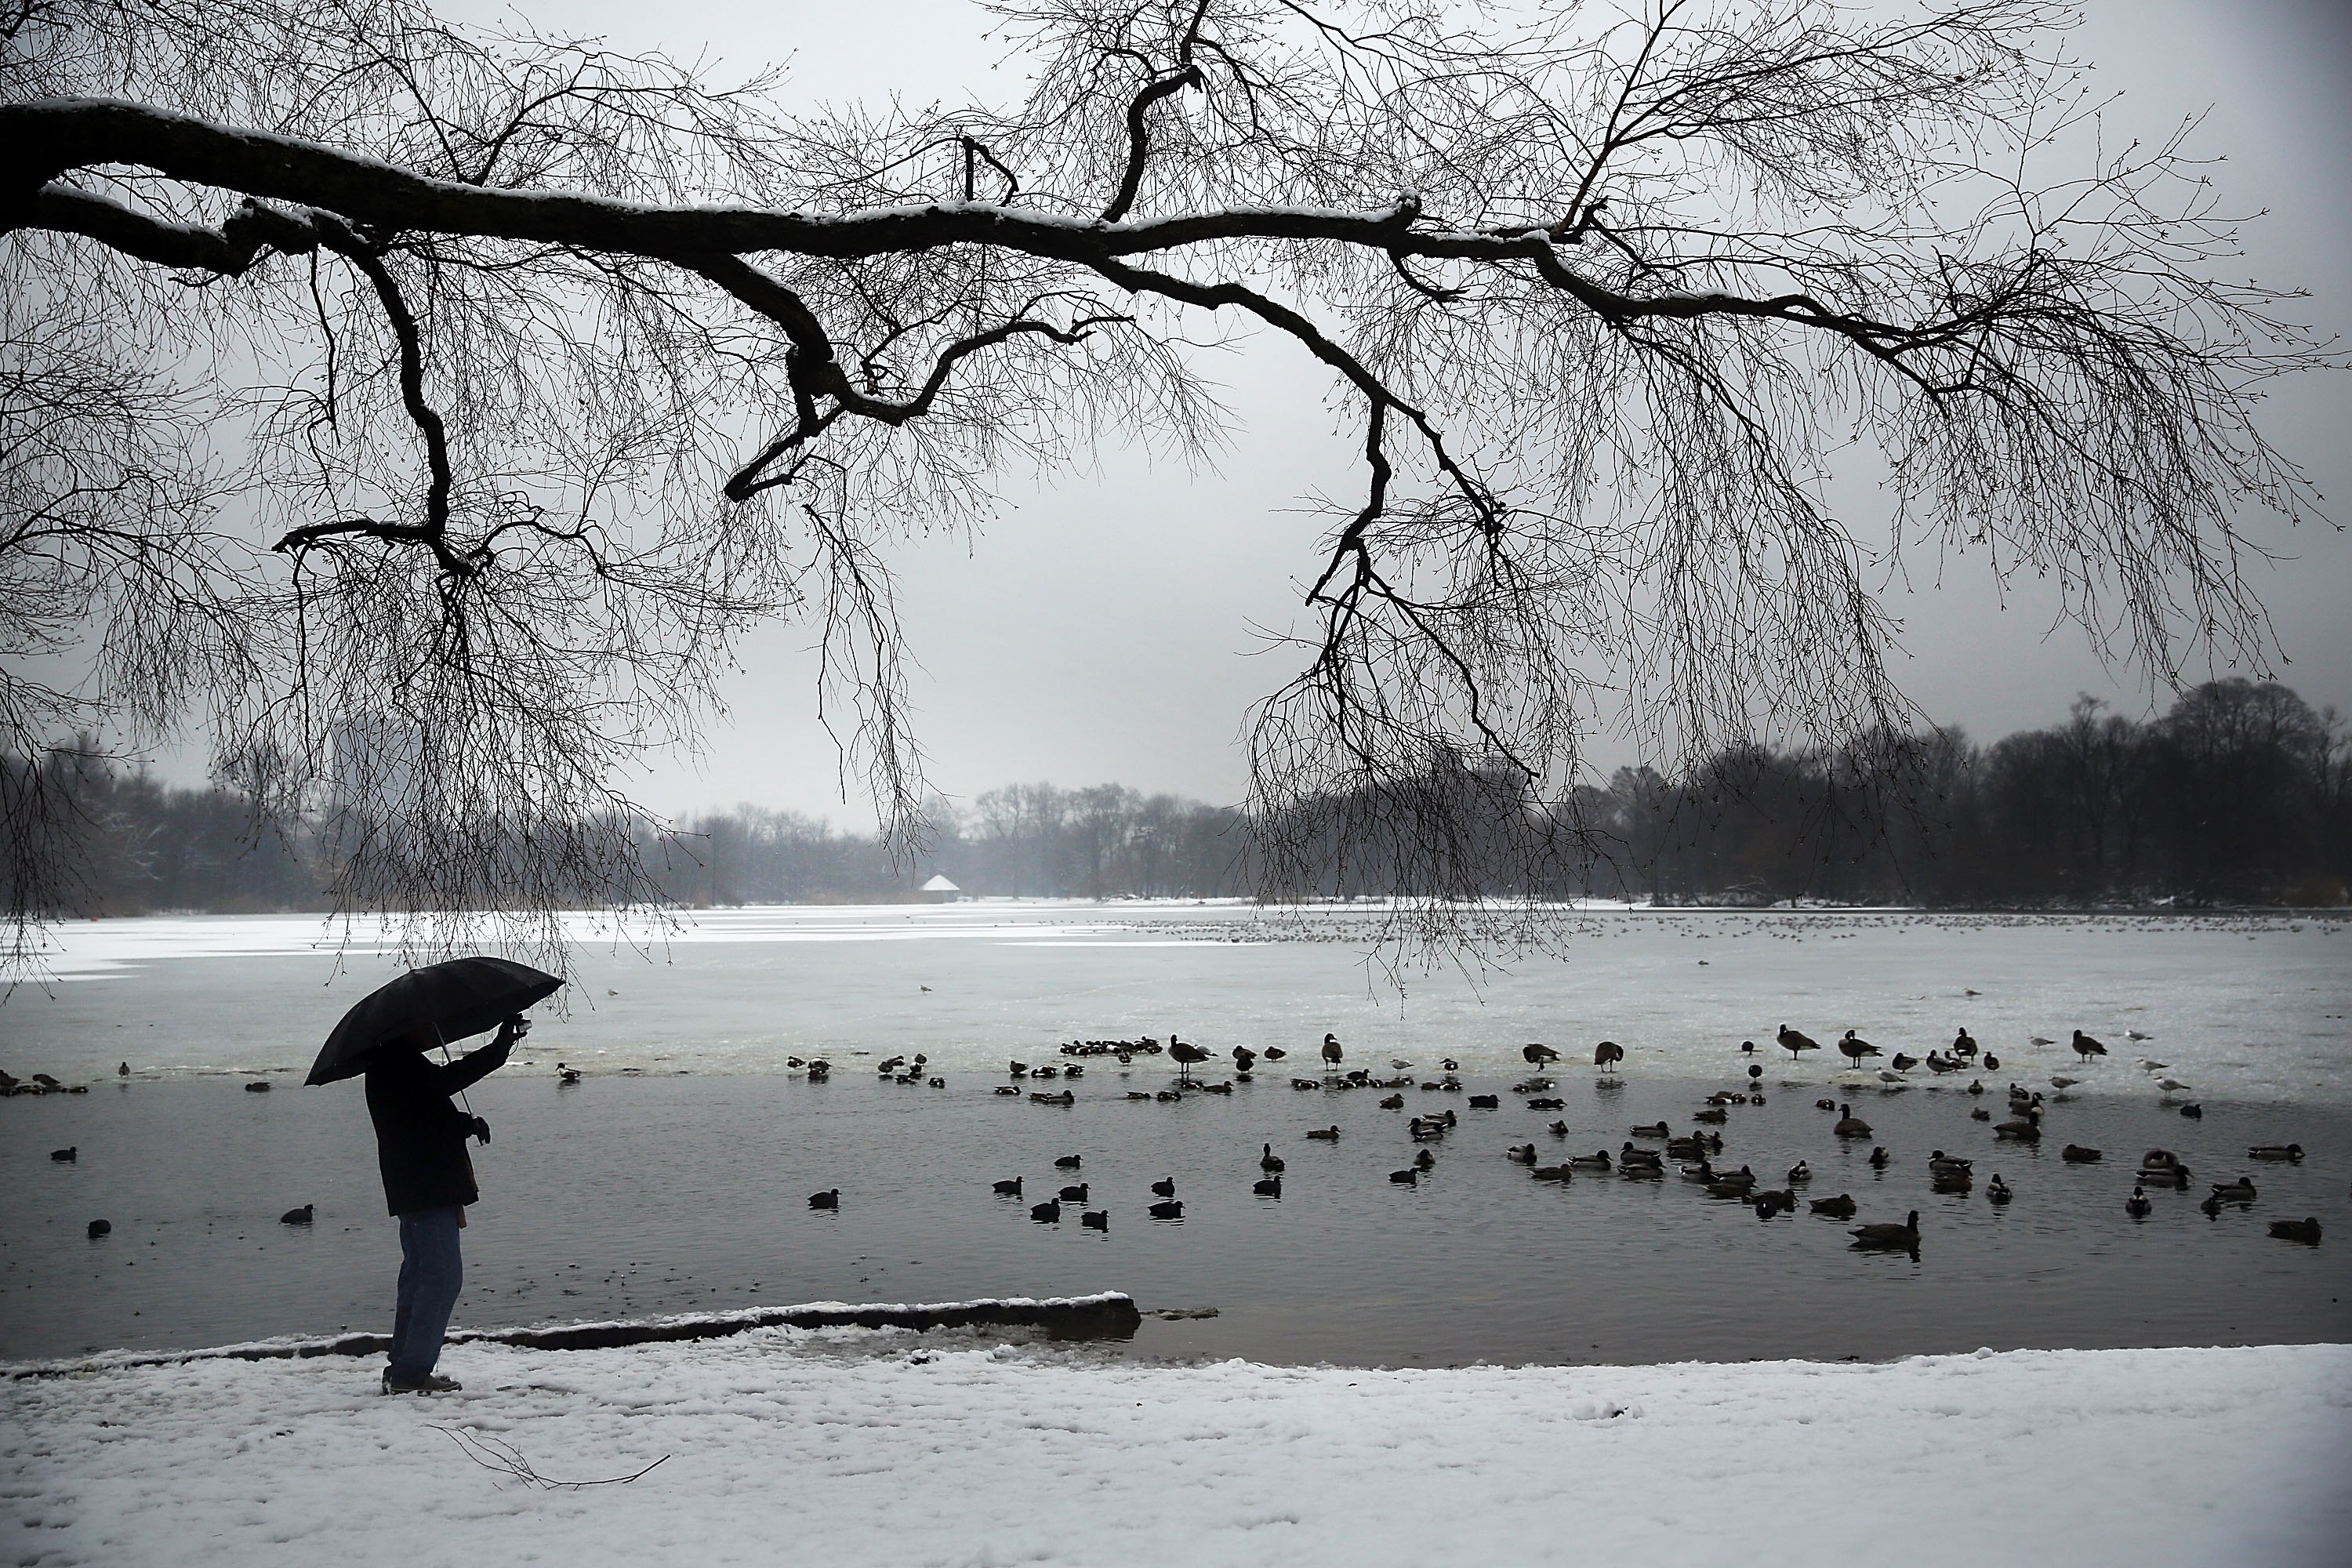 A man takes a picture of ducks and geese at a lake in Brooklyn's Prospect Park following an evening storm on Saturday. The Nor'easter brought snow and freezing rain to much of the Northeast, creating hazardous travel conditions in many areas, and more snow is expected Monday.